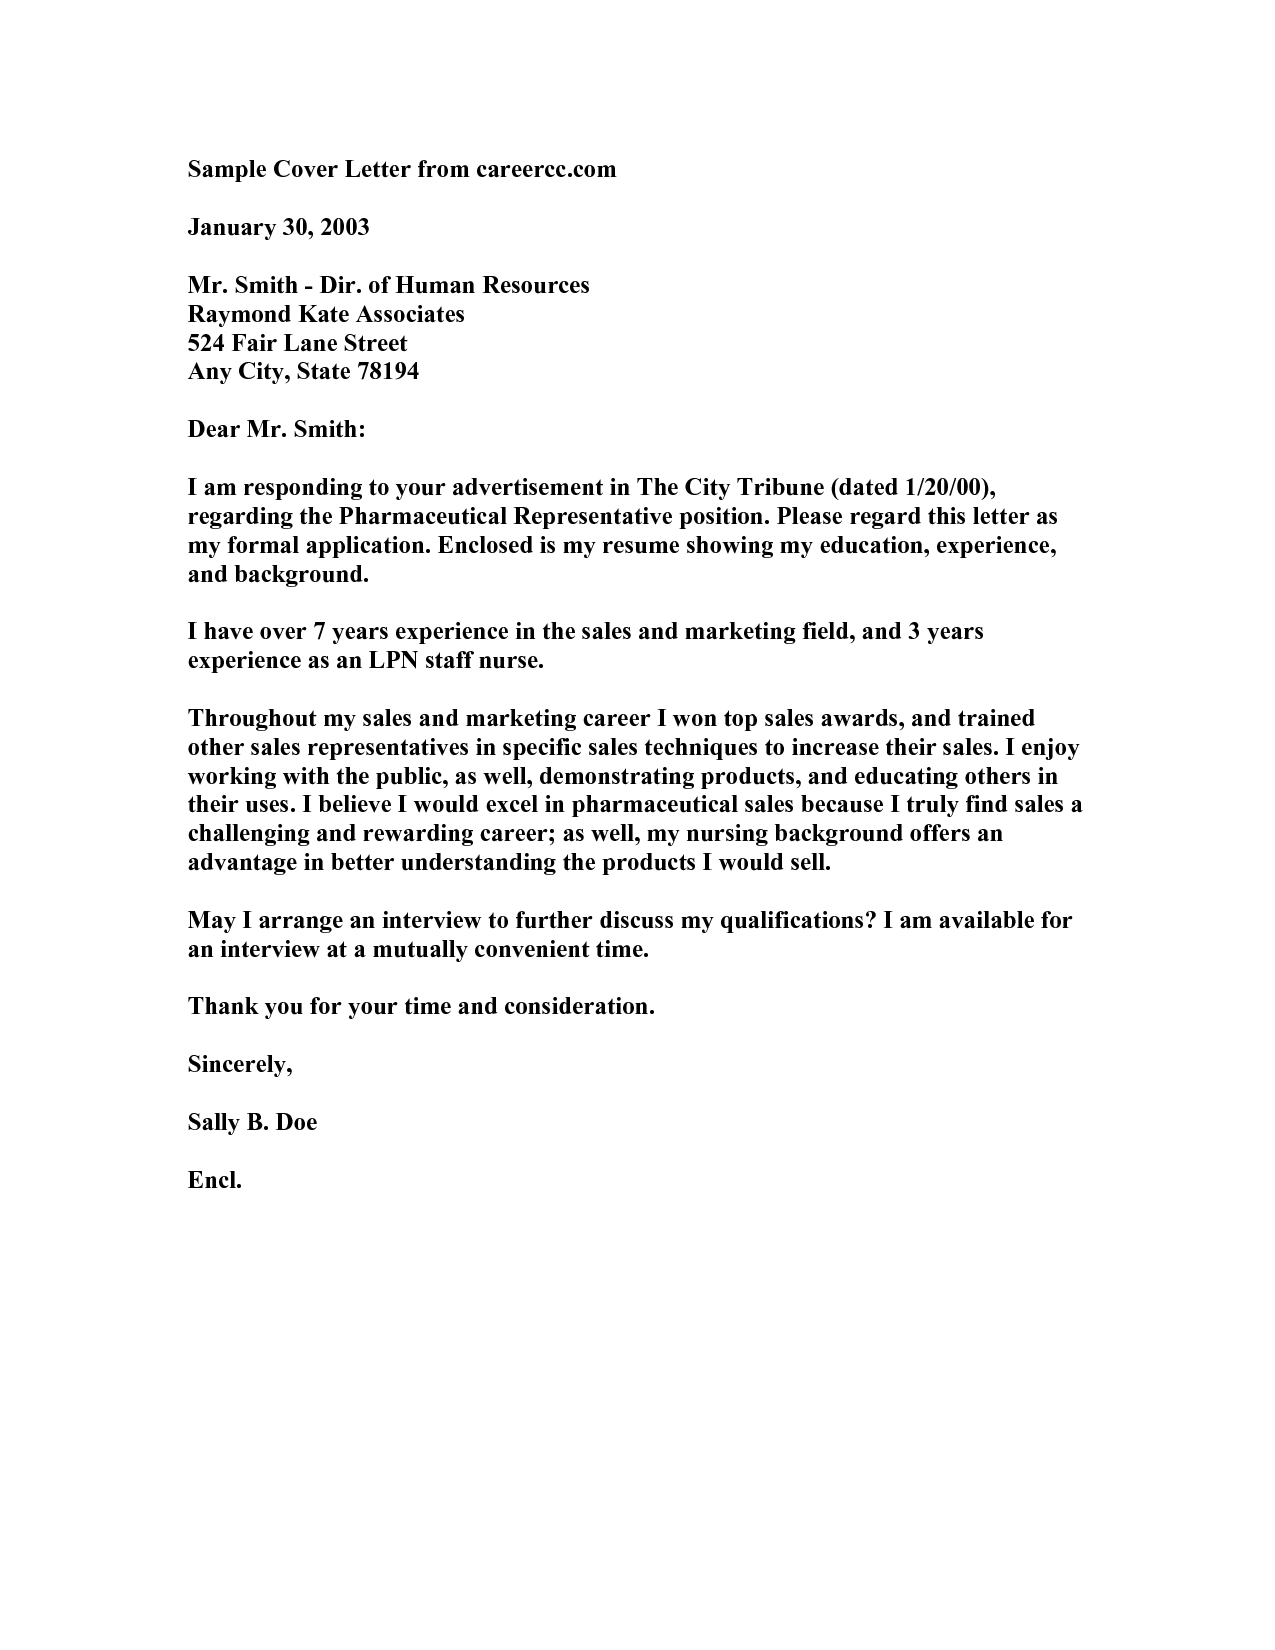 Nurse Cover Letter Example Cover Letter Example For Nurses New Grad